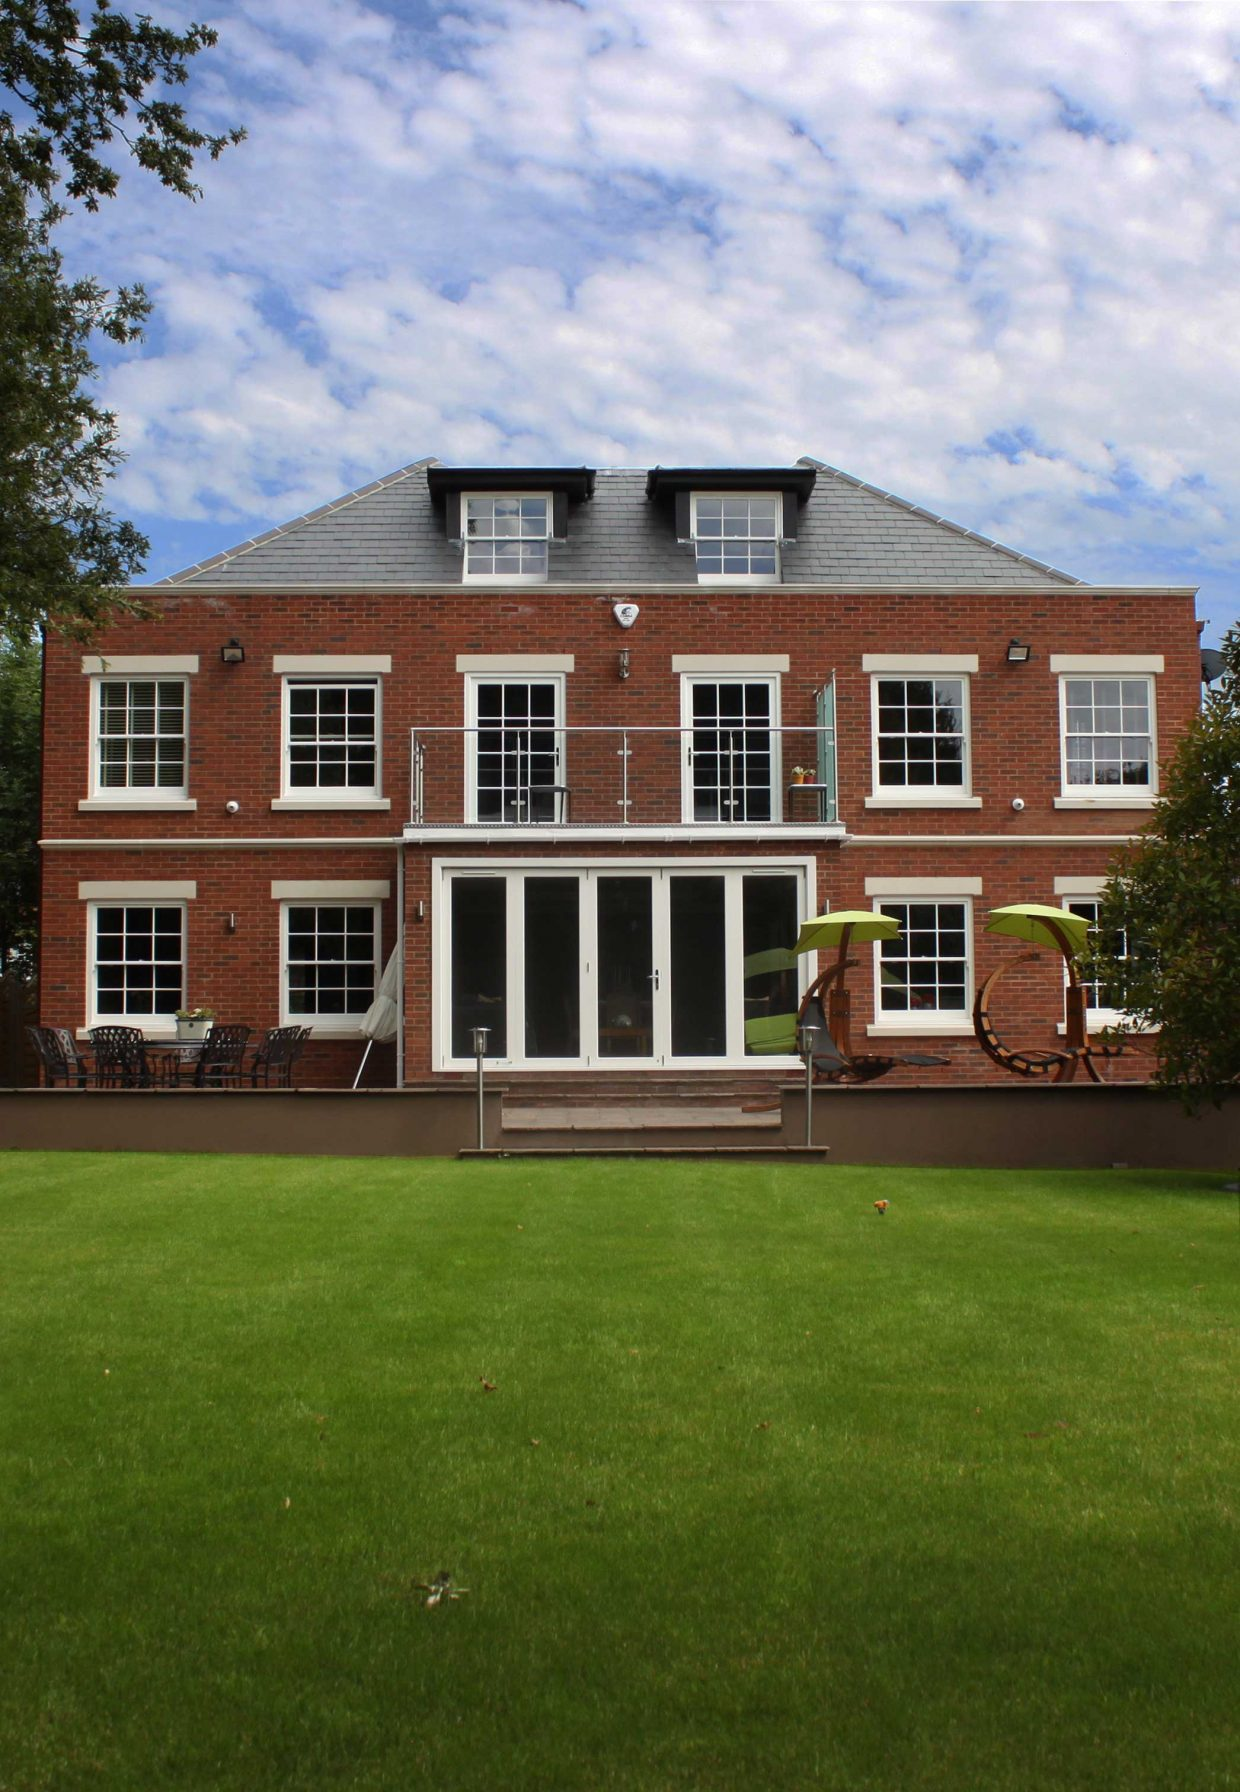 Gallery Image: External shot of rear facade of Chigwell mansion, including Georgian 6 over 6 sash windows and Bifold Doors.